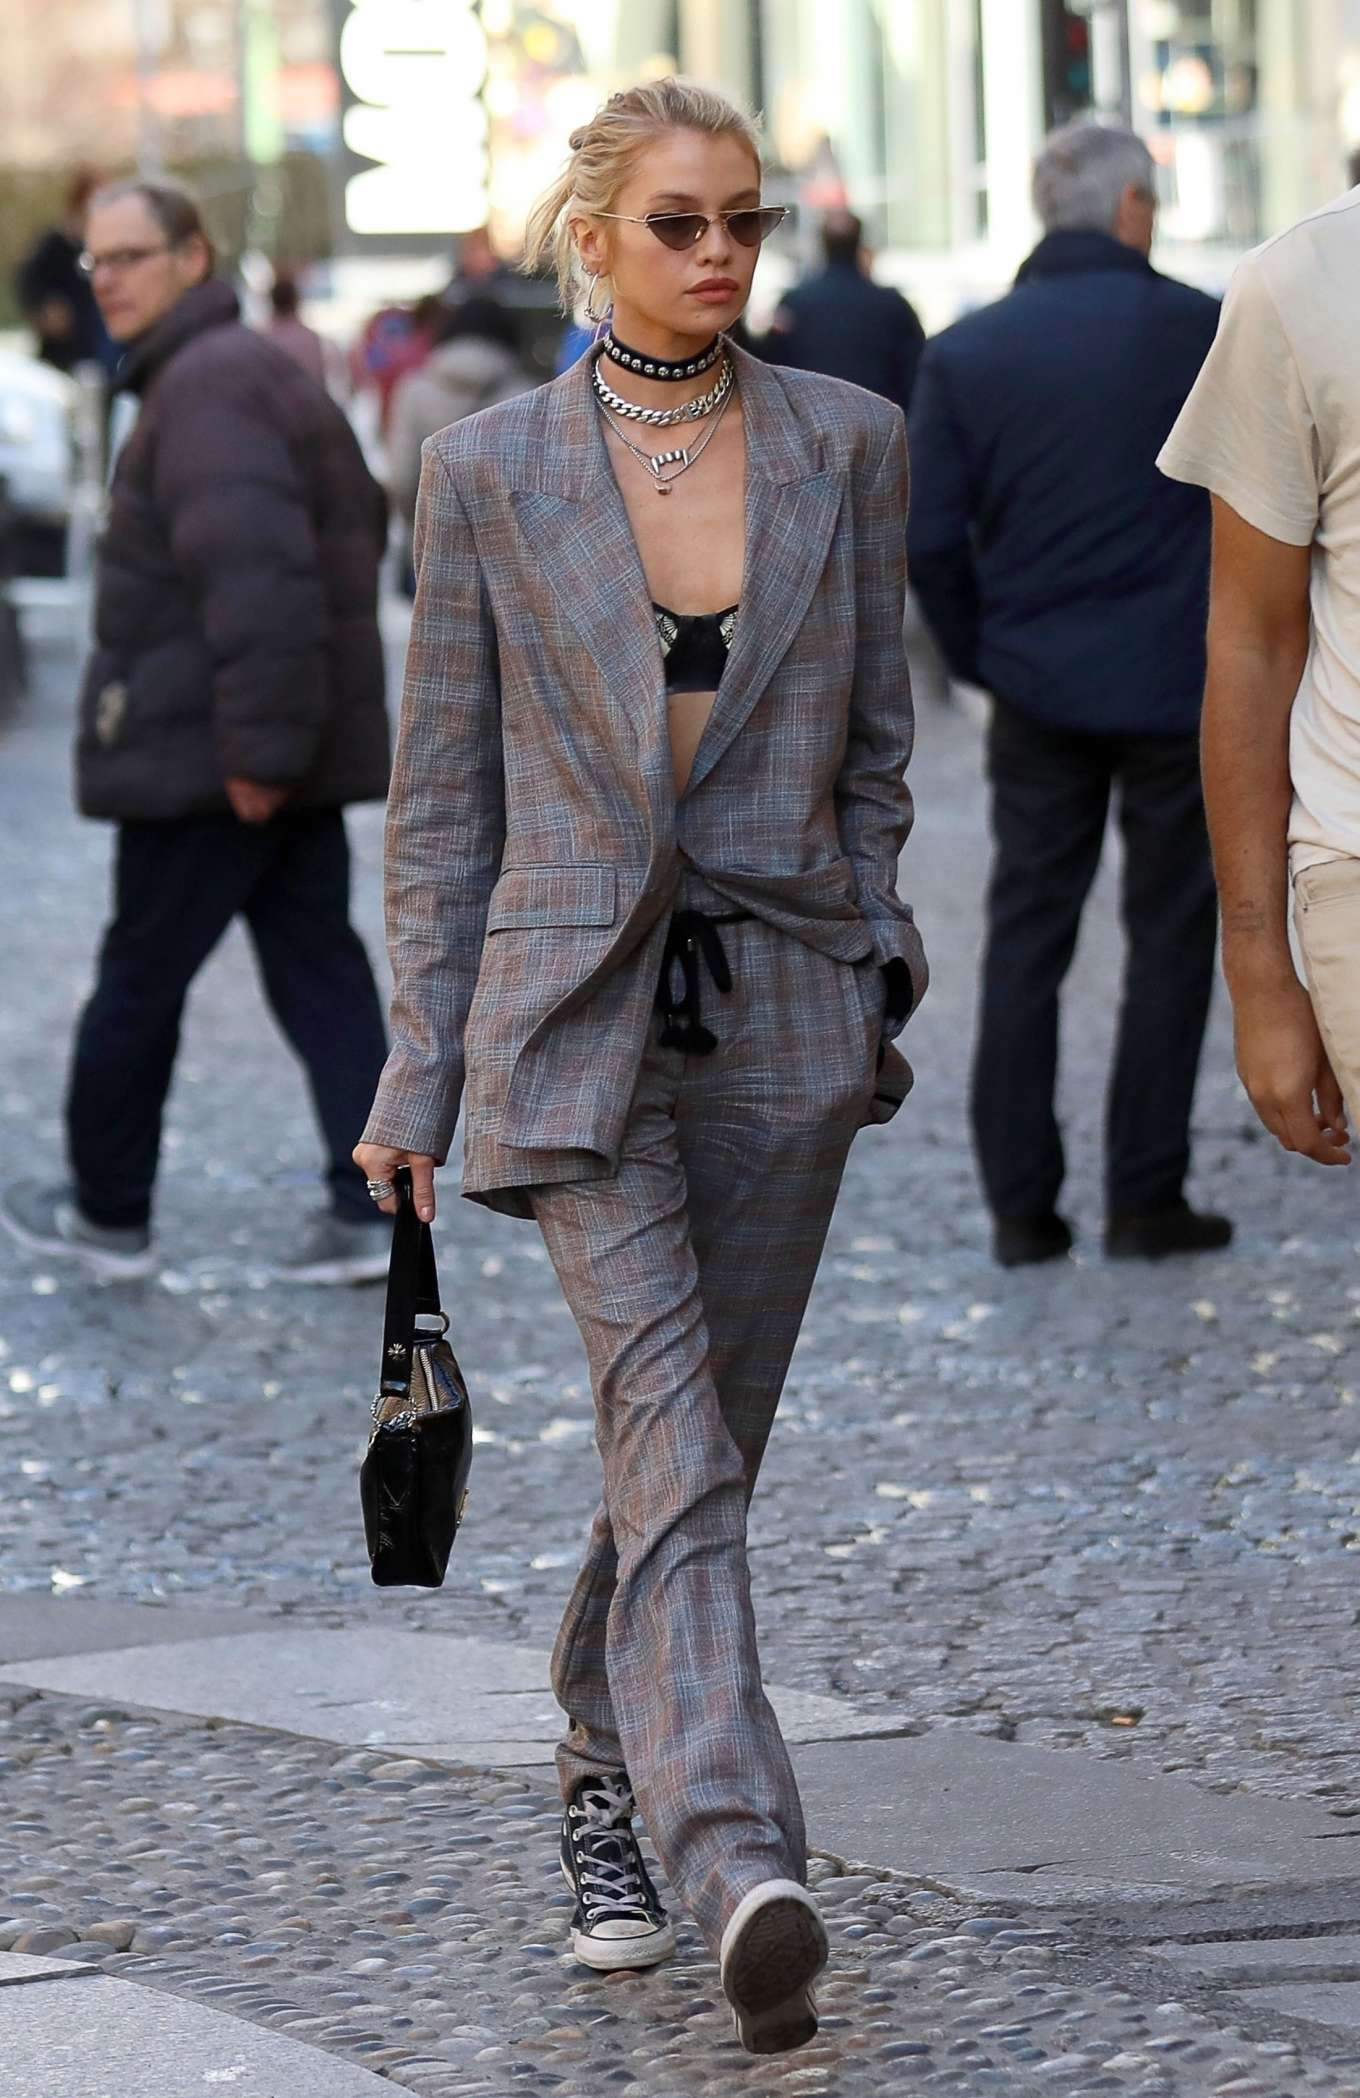 Stella Maxwell - Out for a stroll during Milan Fashion Week in Milan